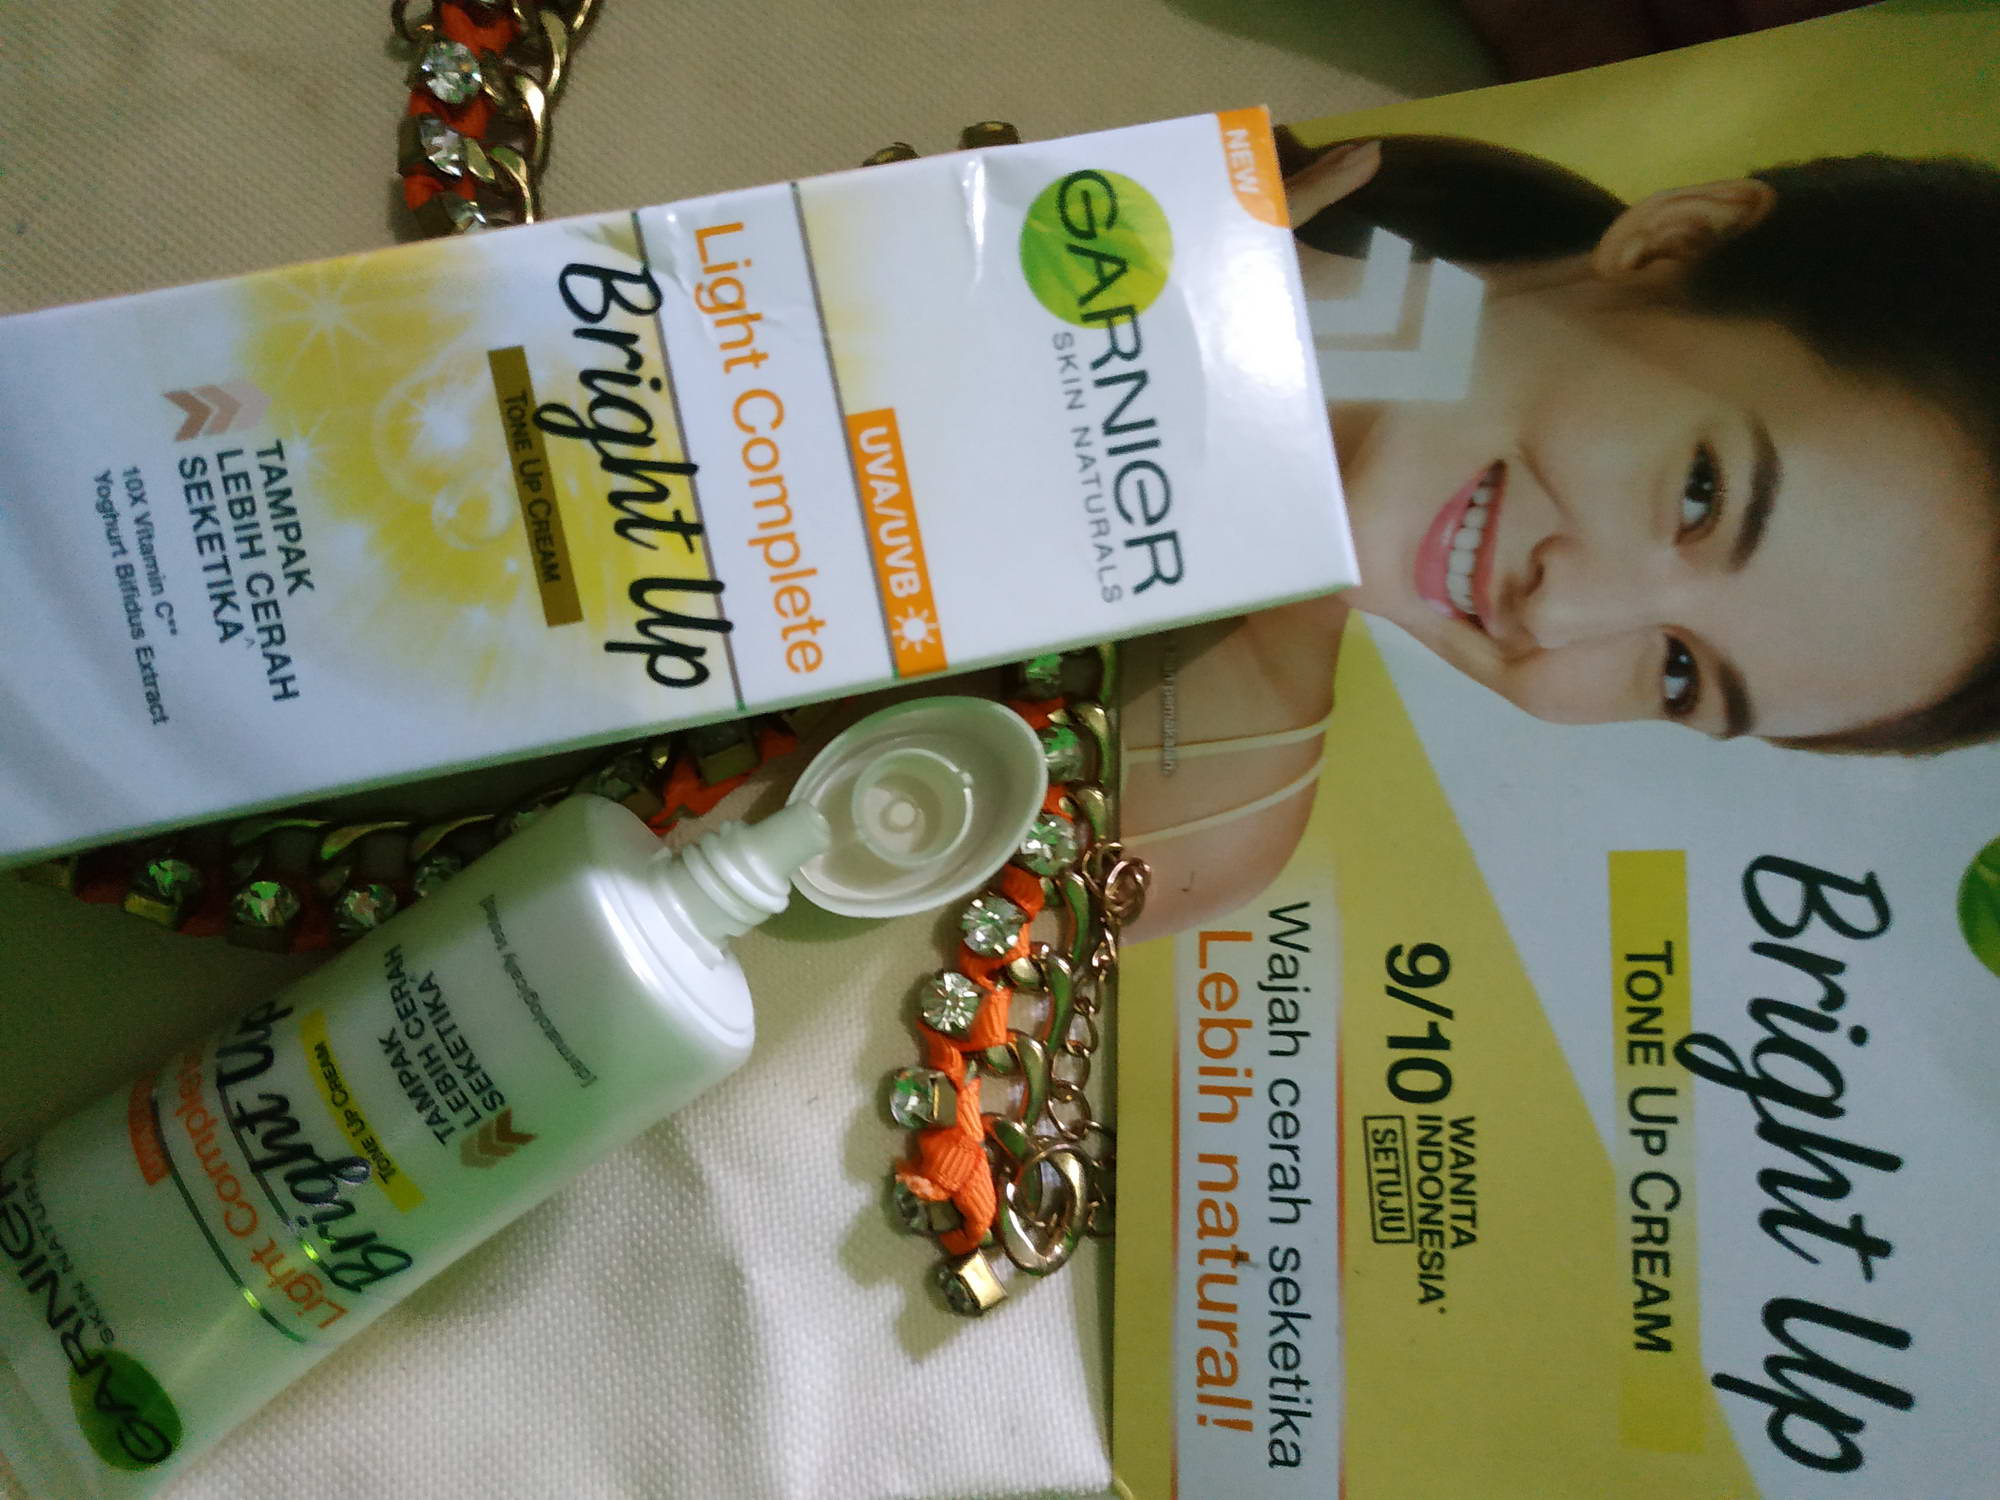 gambar review ke-23 untuk Garnier Light Complete Bright Up Tone Up Cream